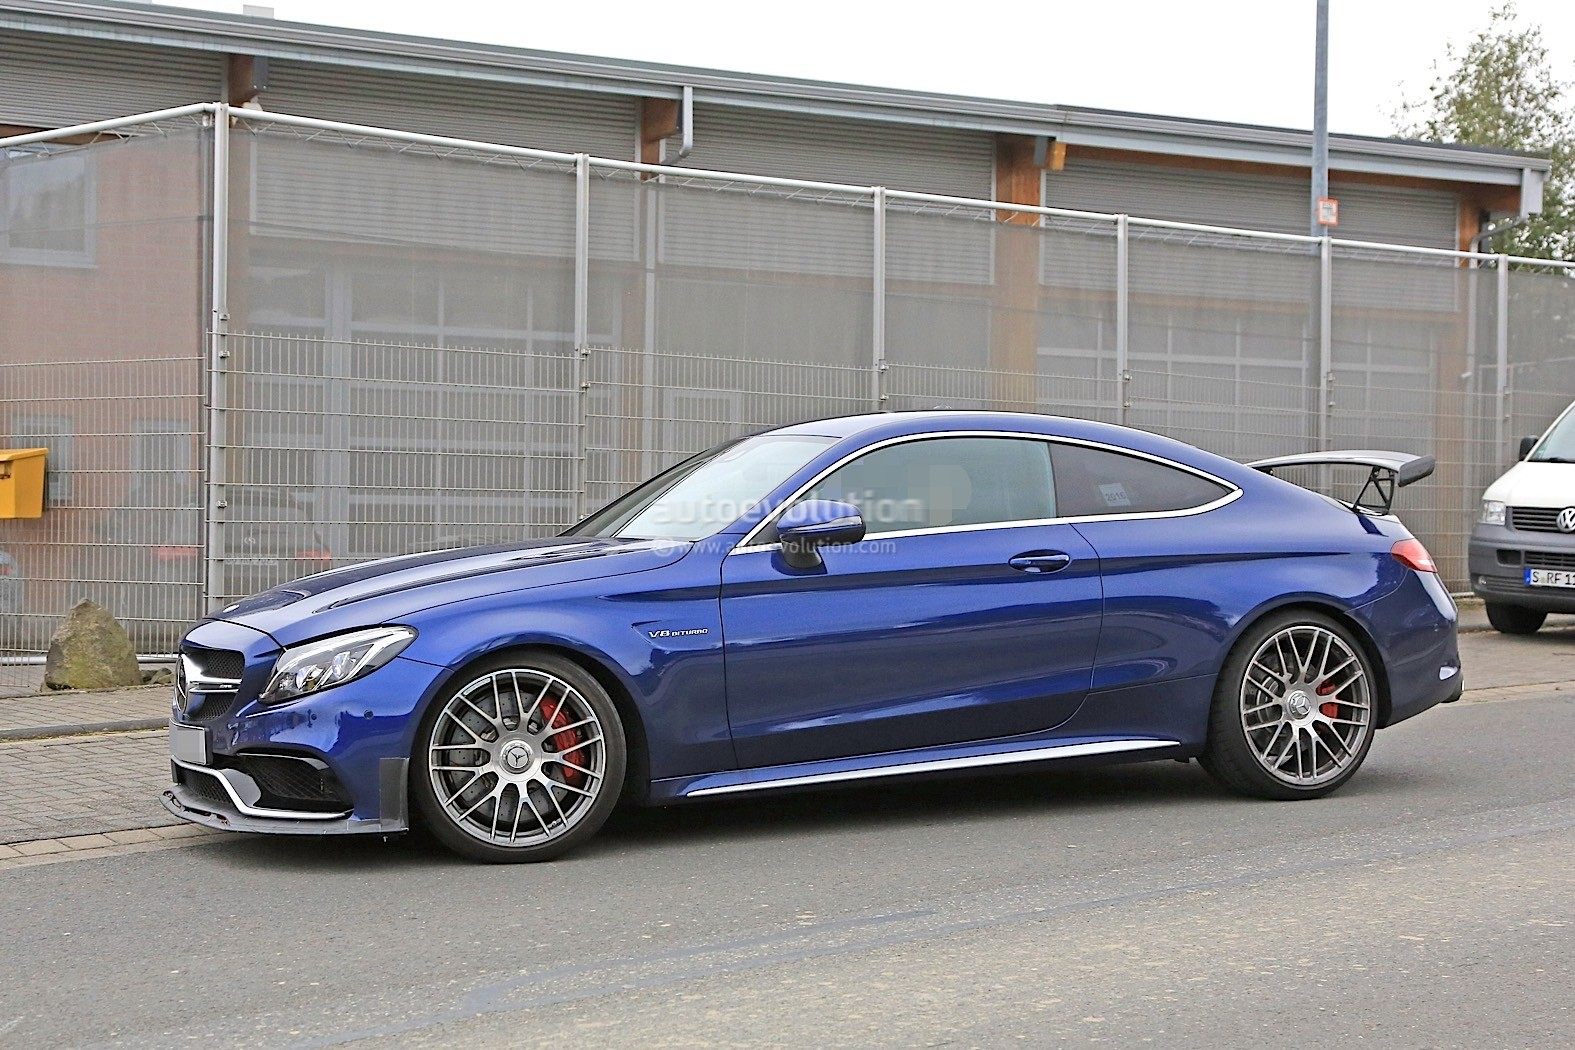 2018 Mercedes-AMG C63 R Coupe Comes to Crash the BMW M4 GTS Party ...